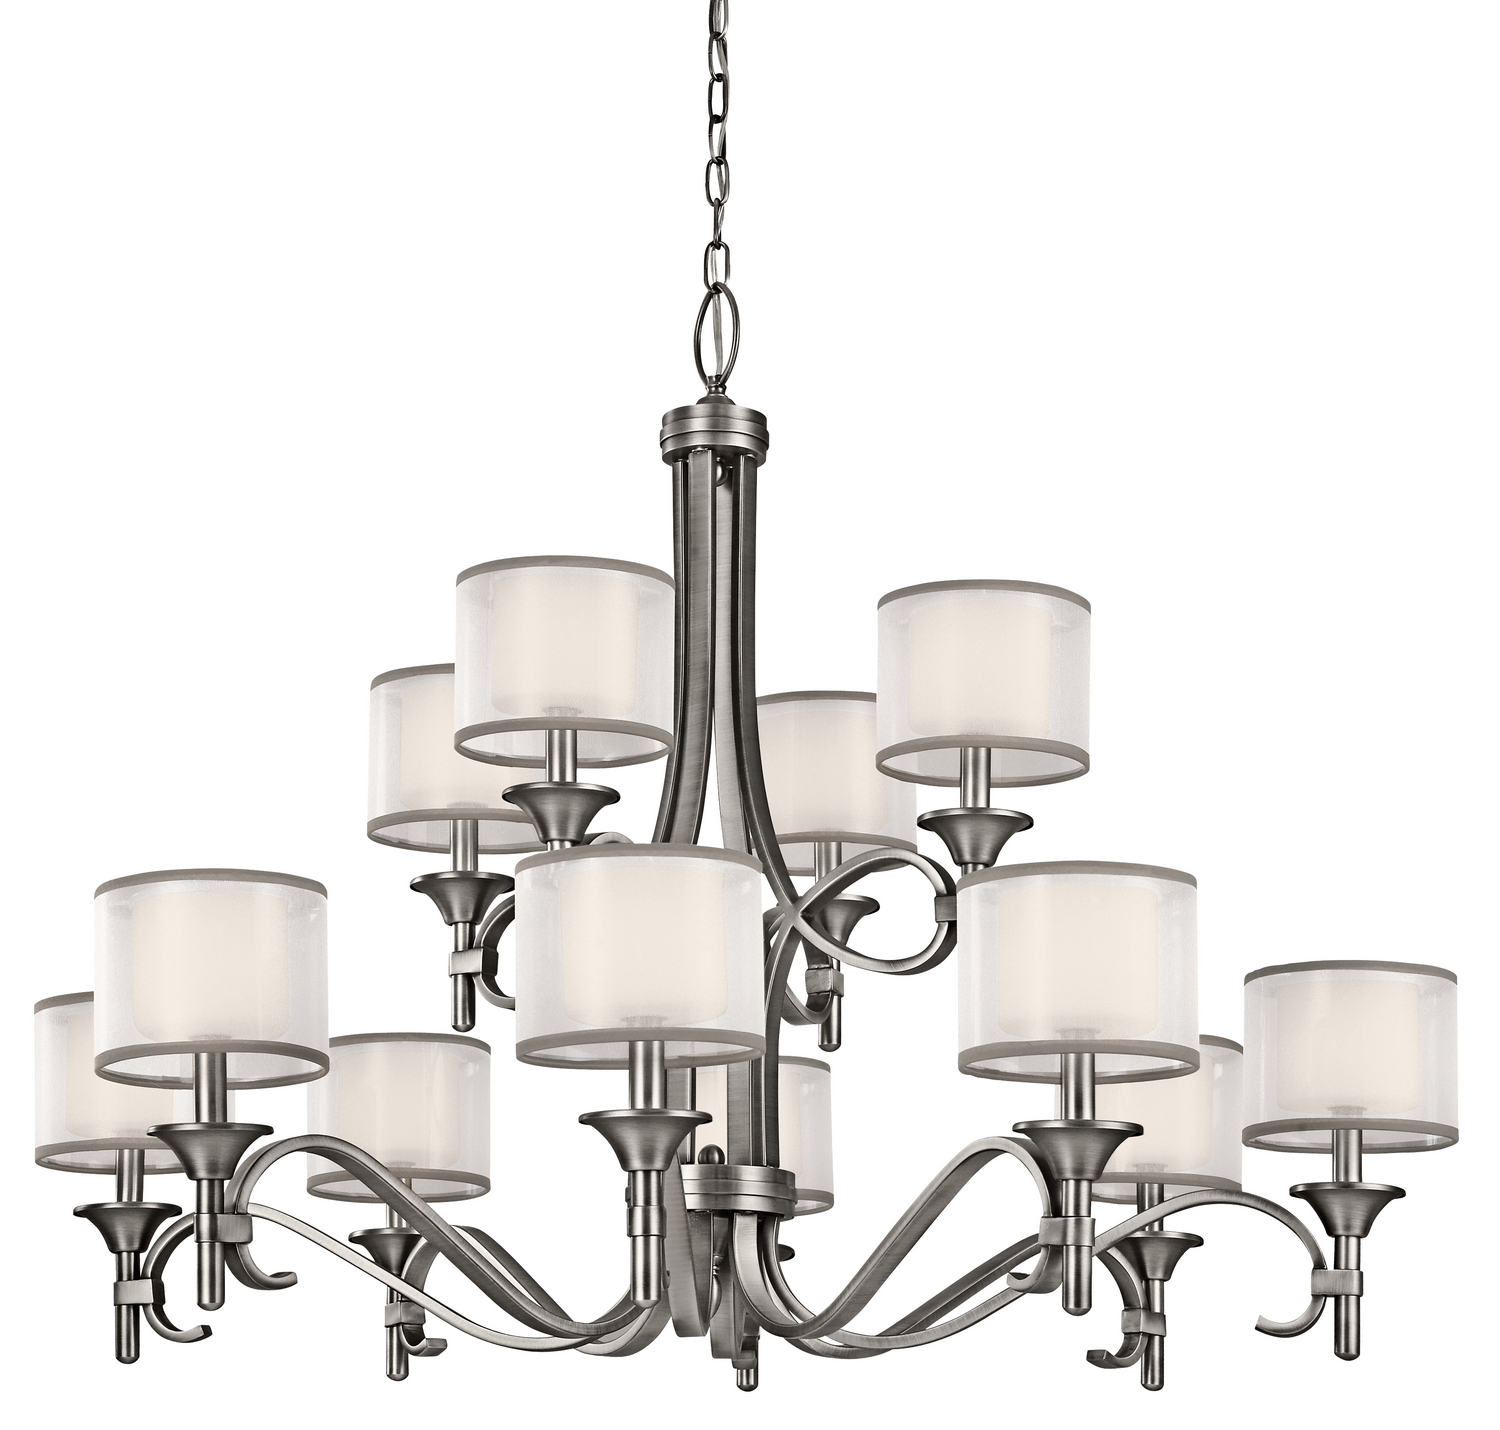 12 Light Chandelier from the Lacey collection by Kichler 42383AP